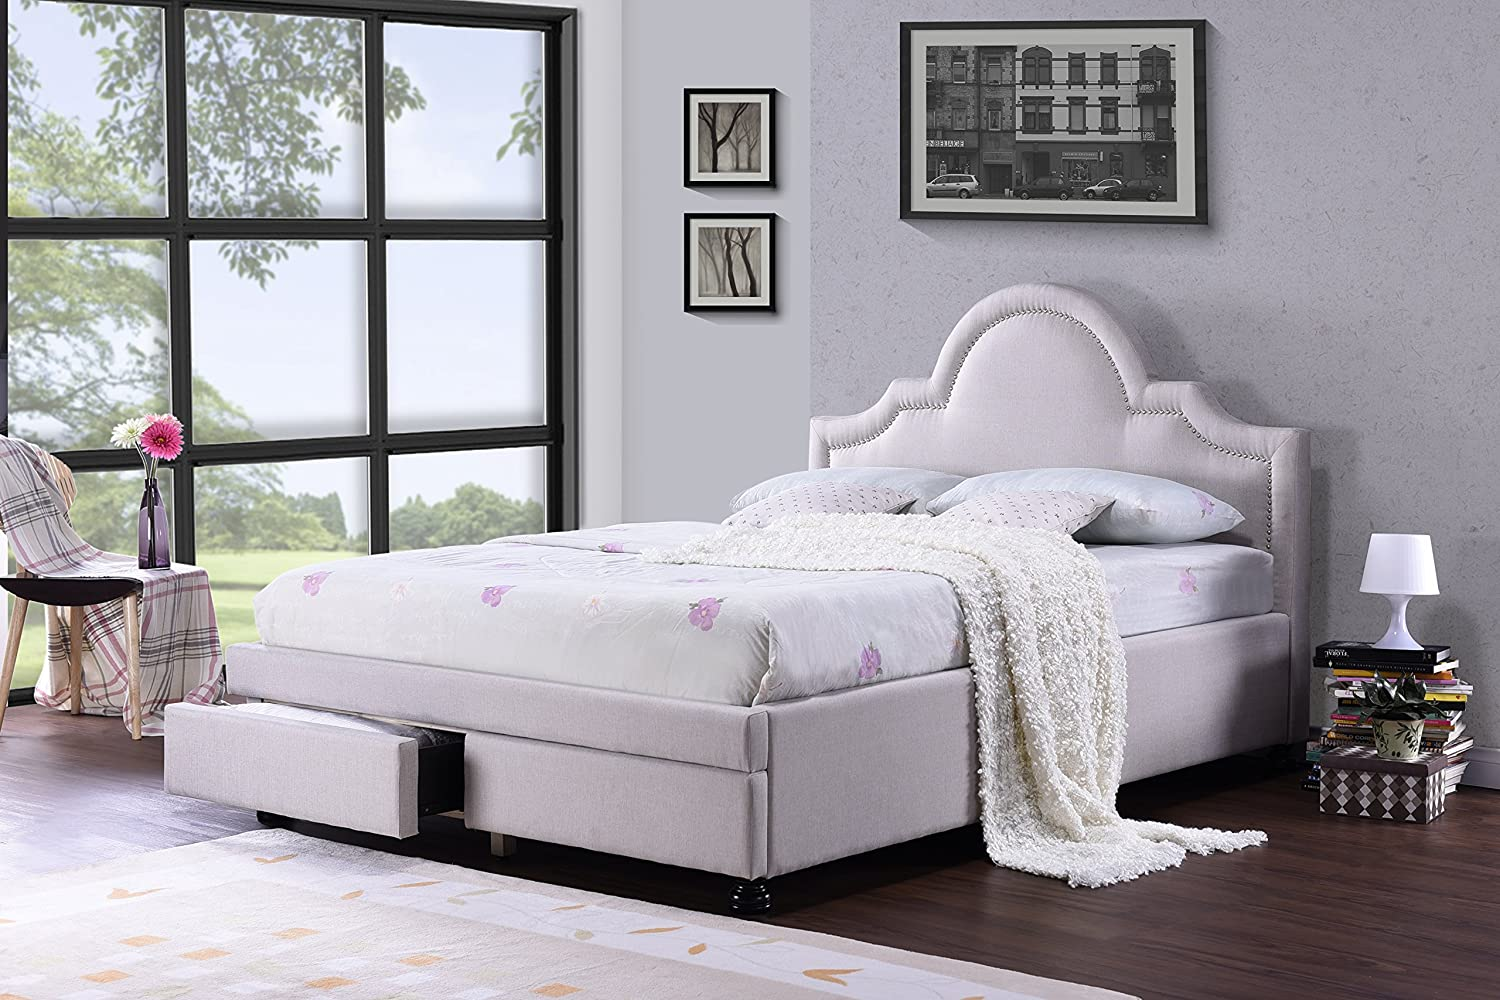 Amazon.com Baxton Studio Brisbane Modern Fabric Storage Platform Bed with 2 Drawers Queen Light Beige Kitchen u0026 Dining & Amazon.com: Baxton Studio Brisbane Modern Fabric Storage Platform ...